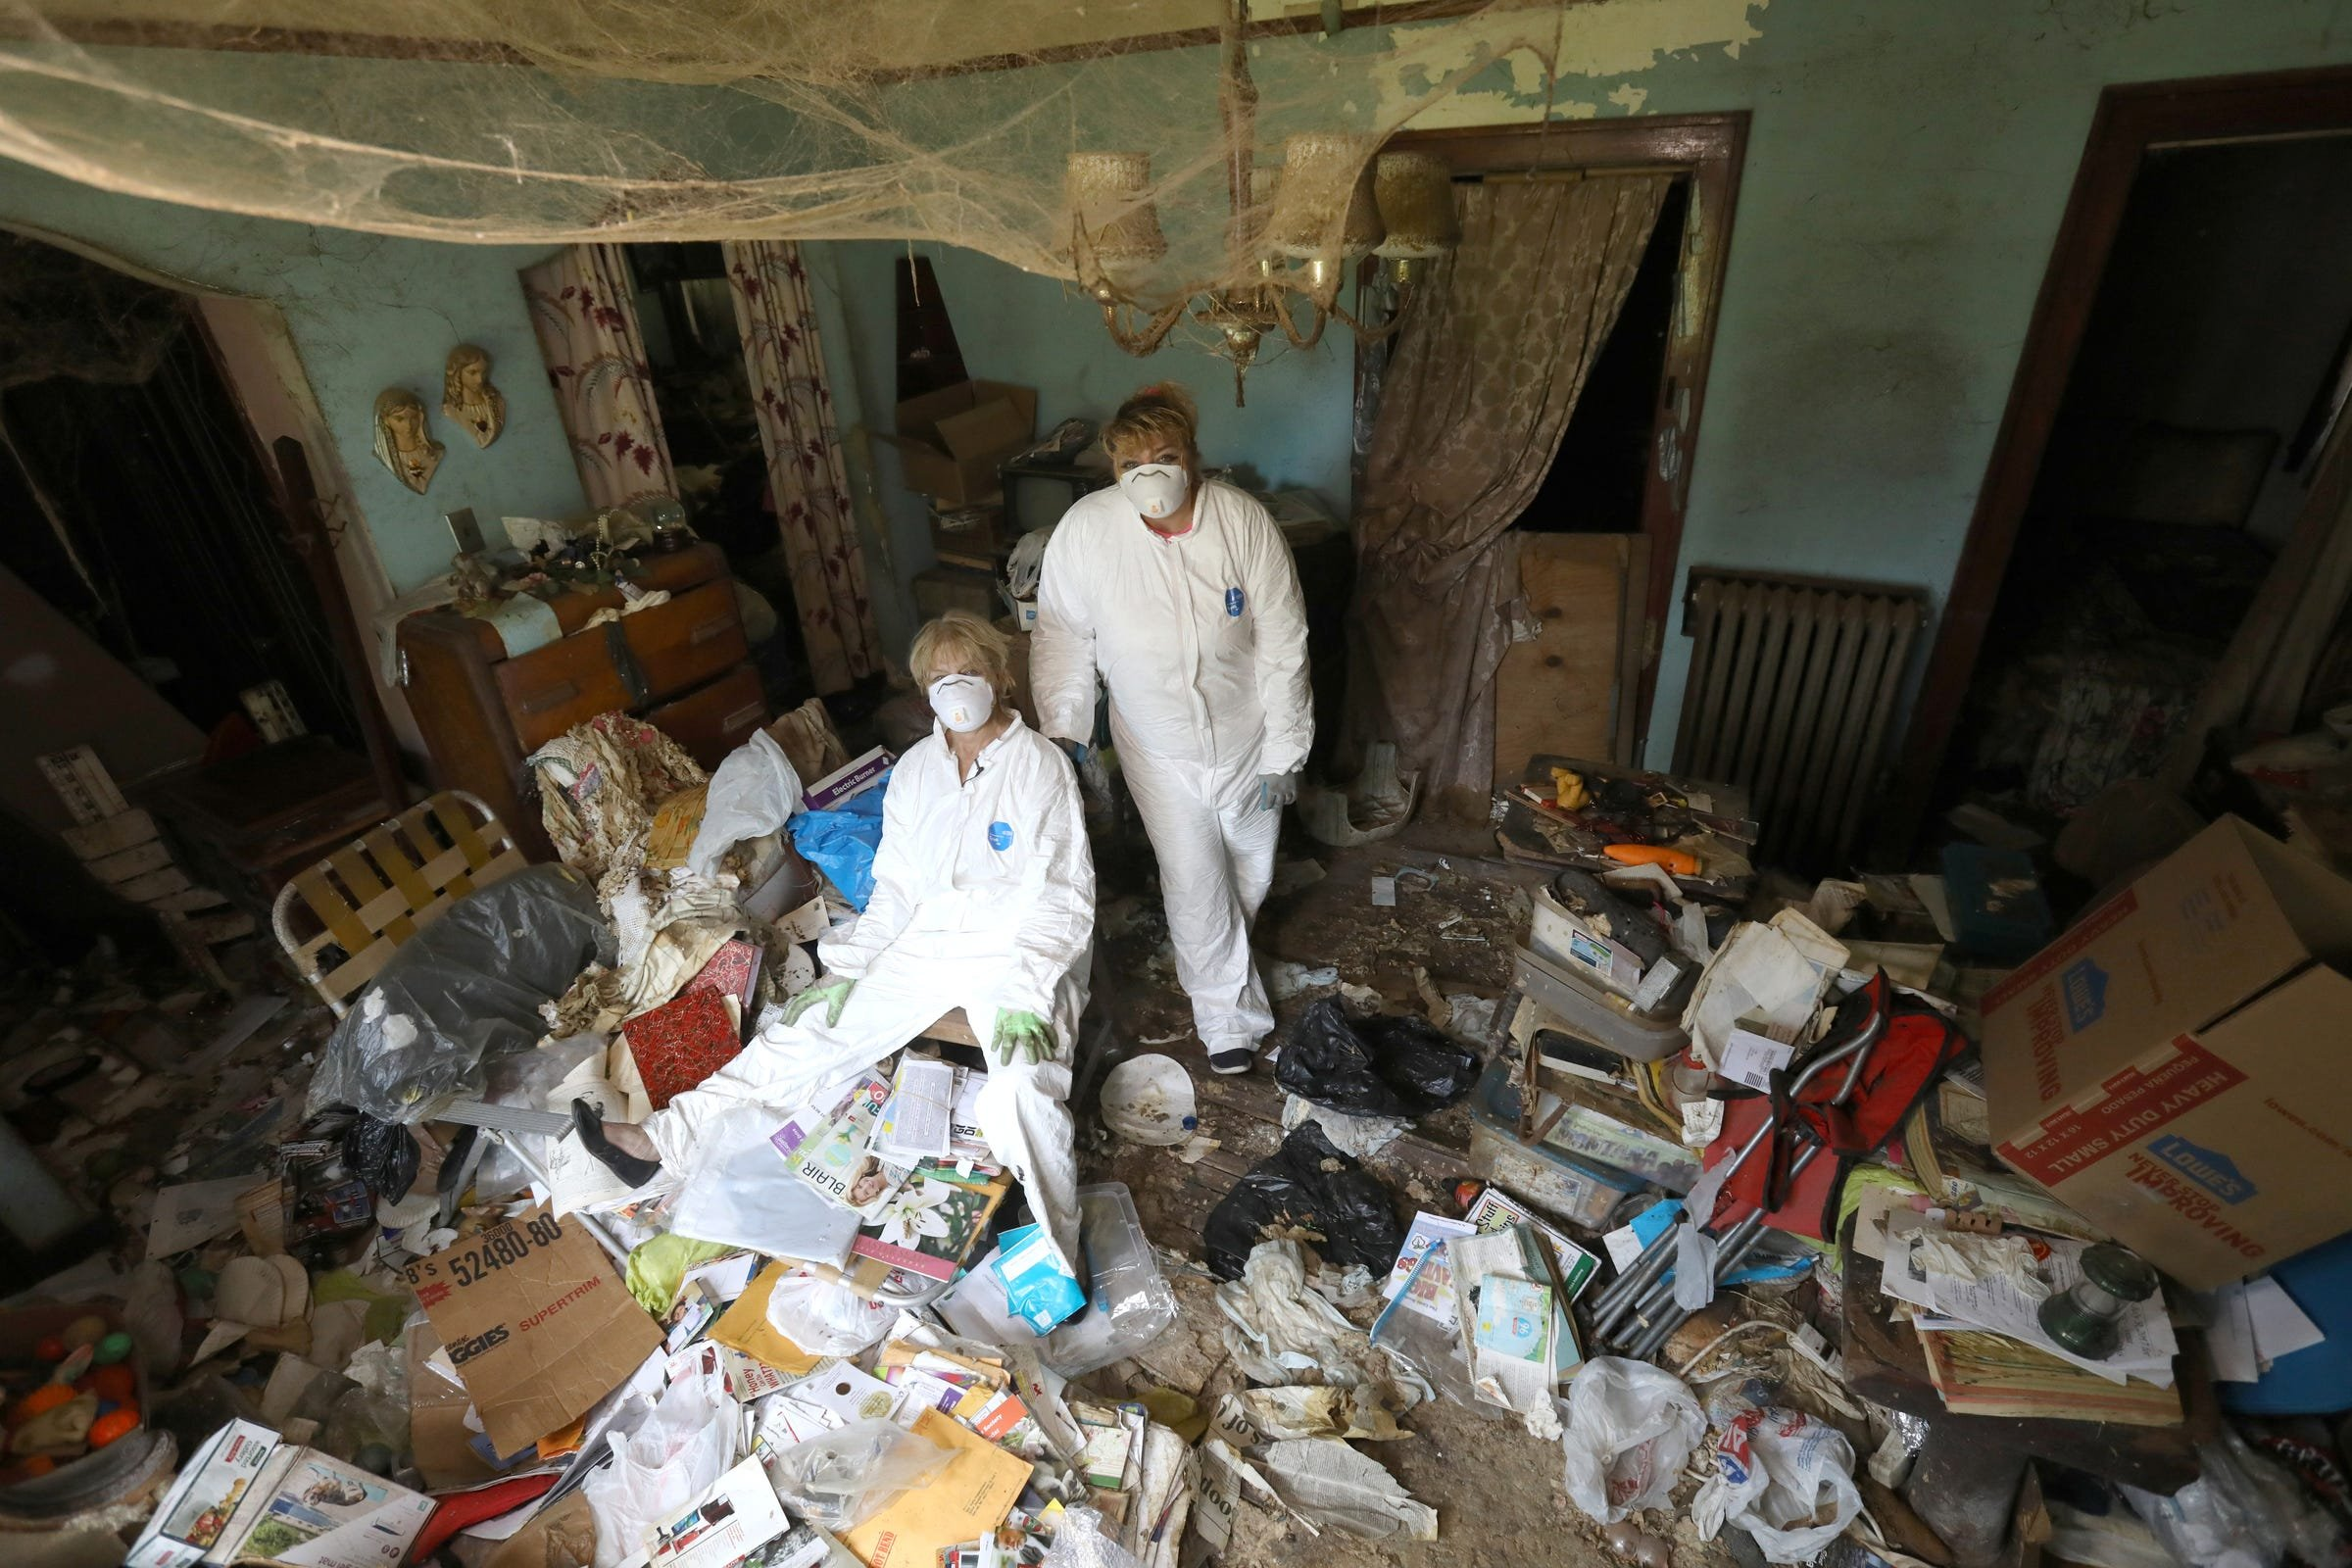 8 signs you may be a hoarder: Health disorder is more than being messy